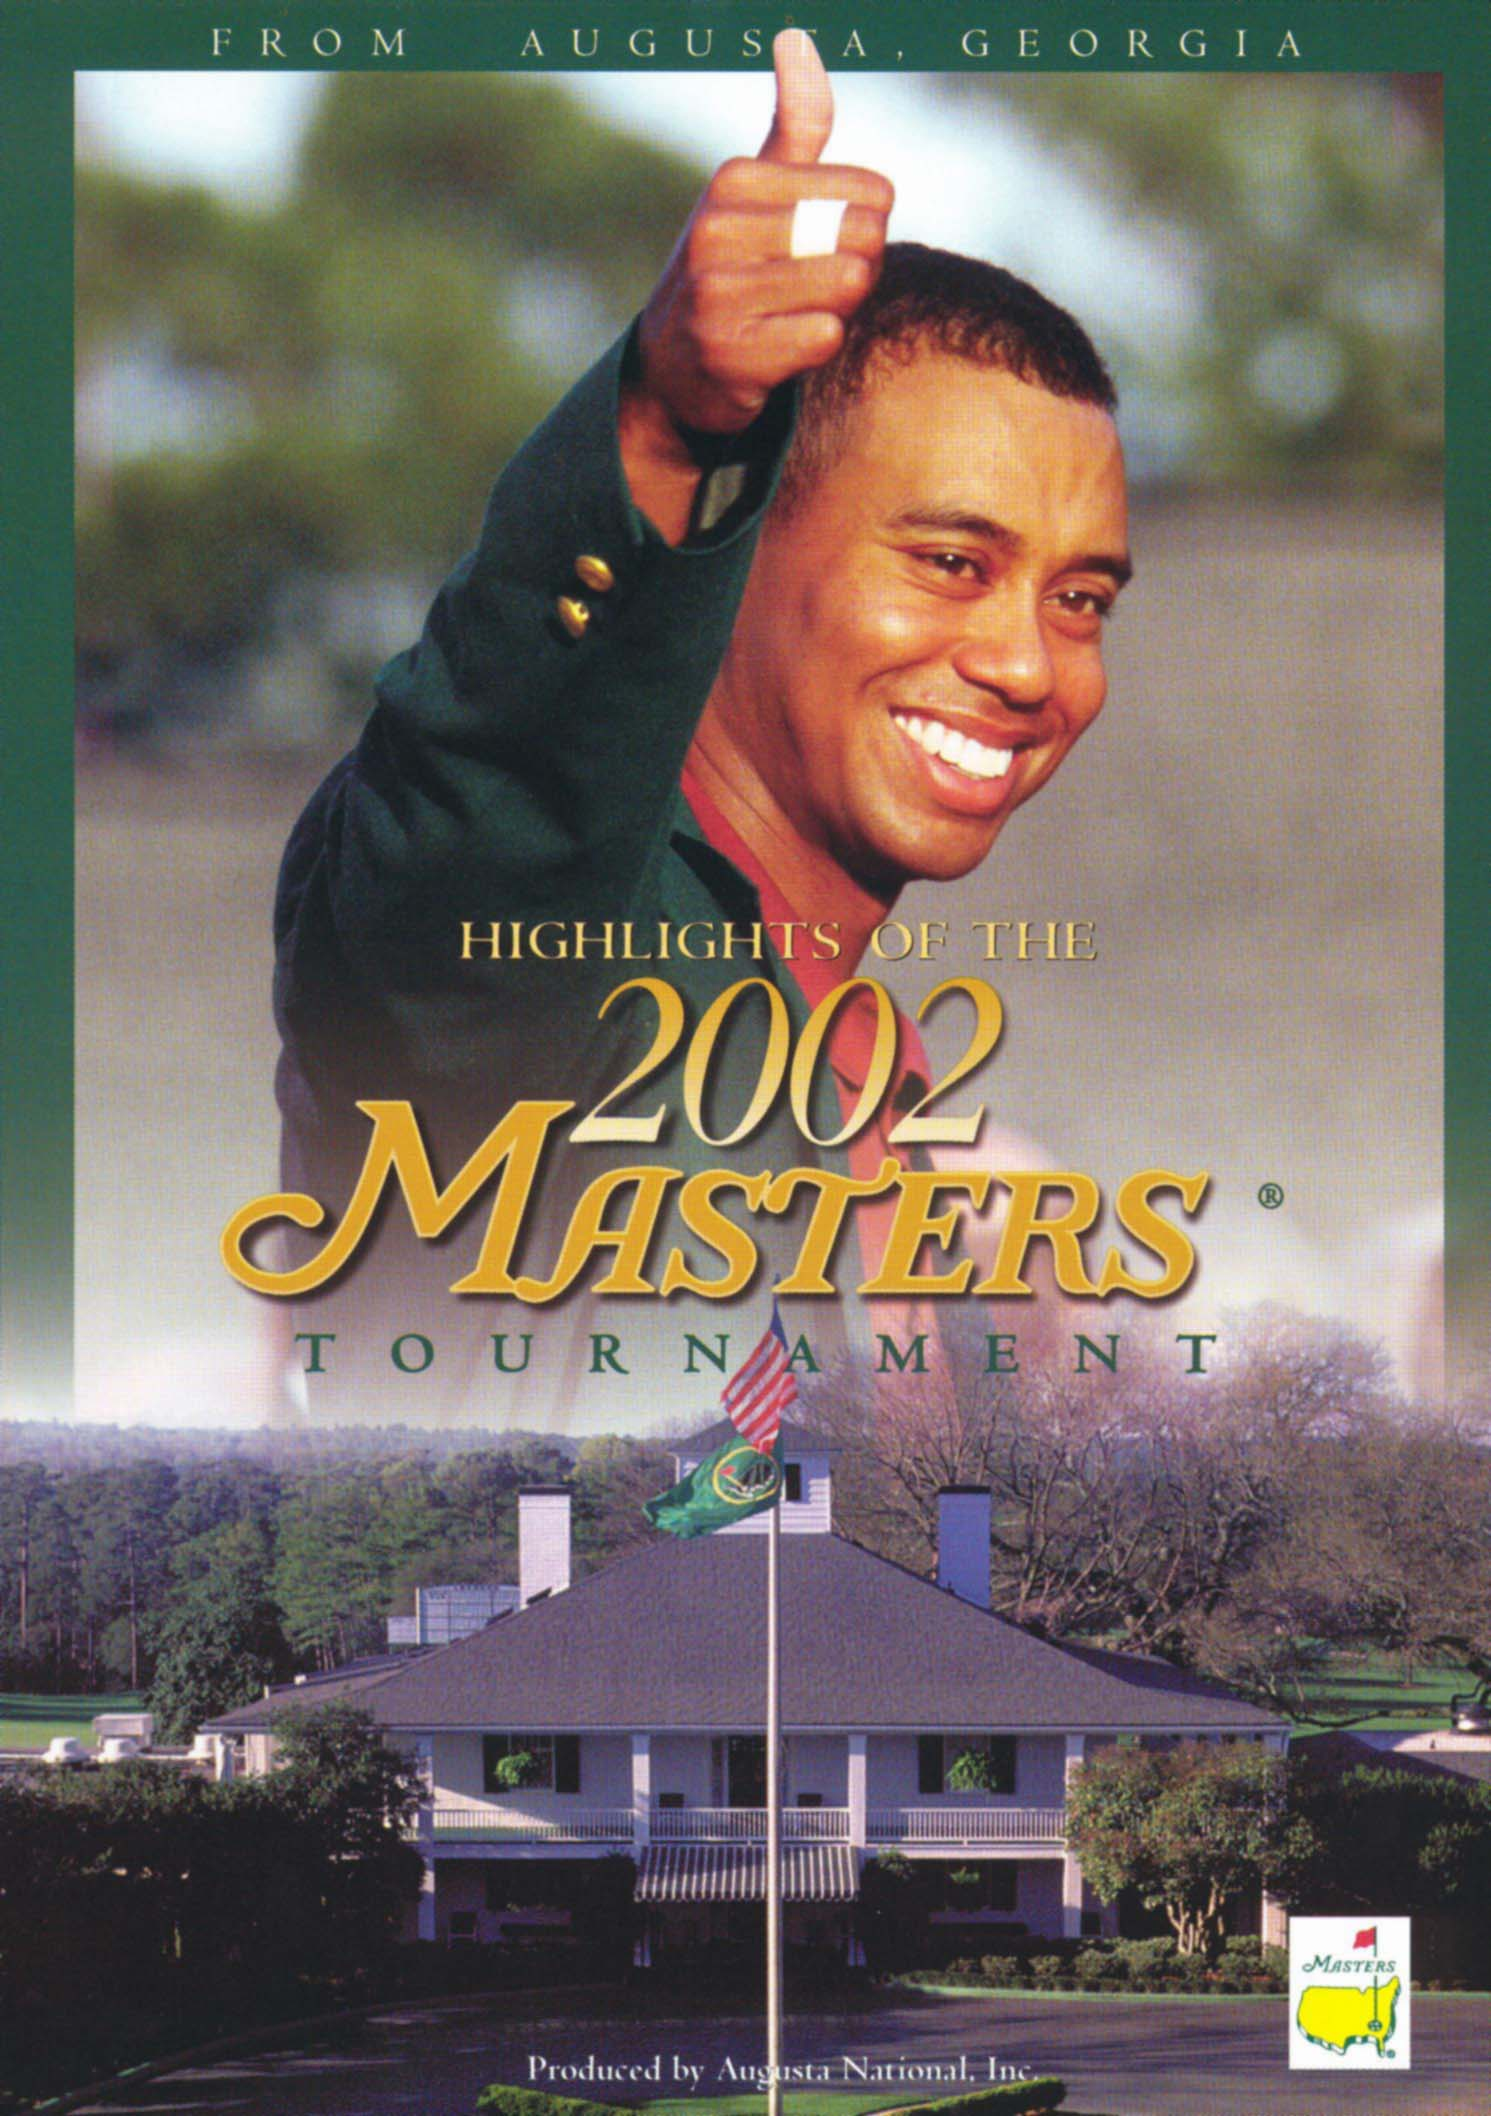 PGA: Highlights of the 2002 Masters Tournament